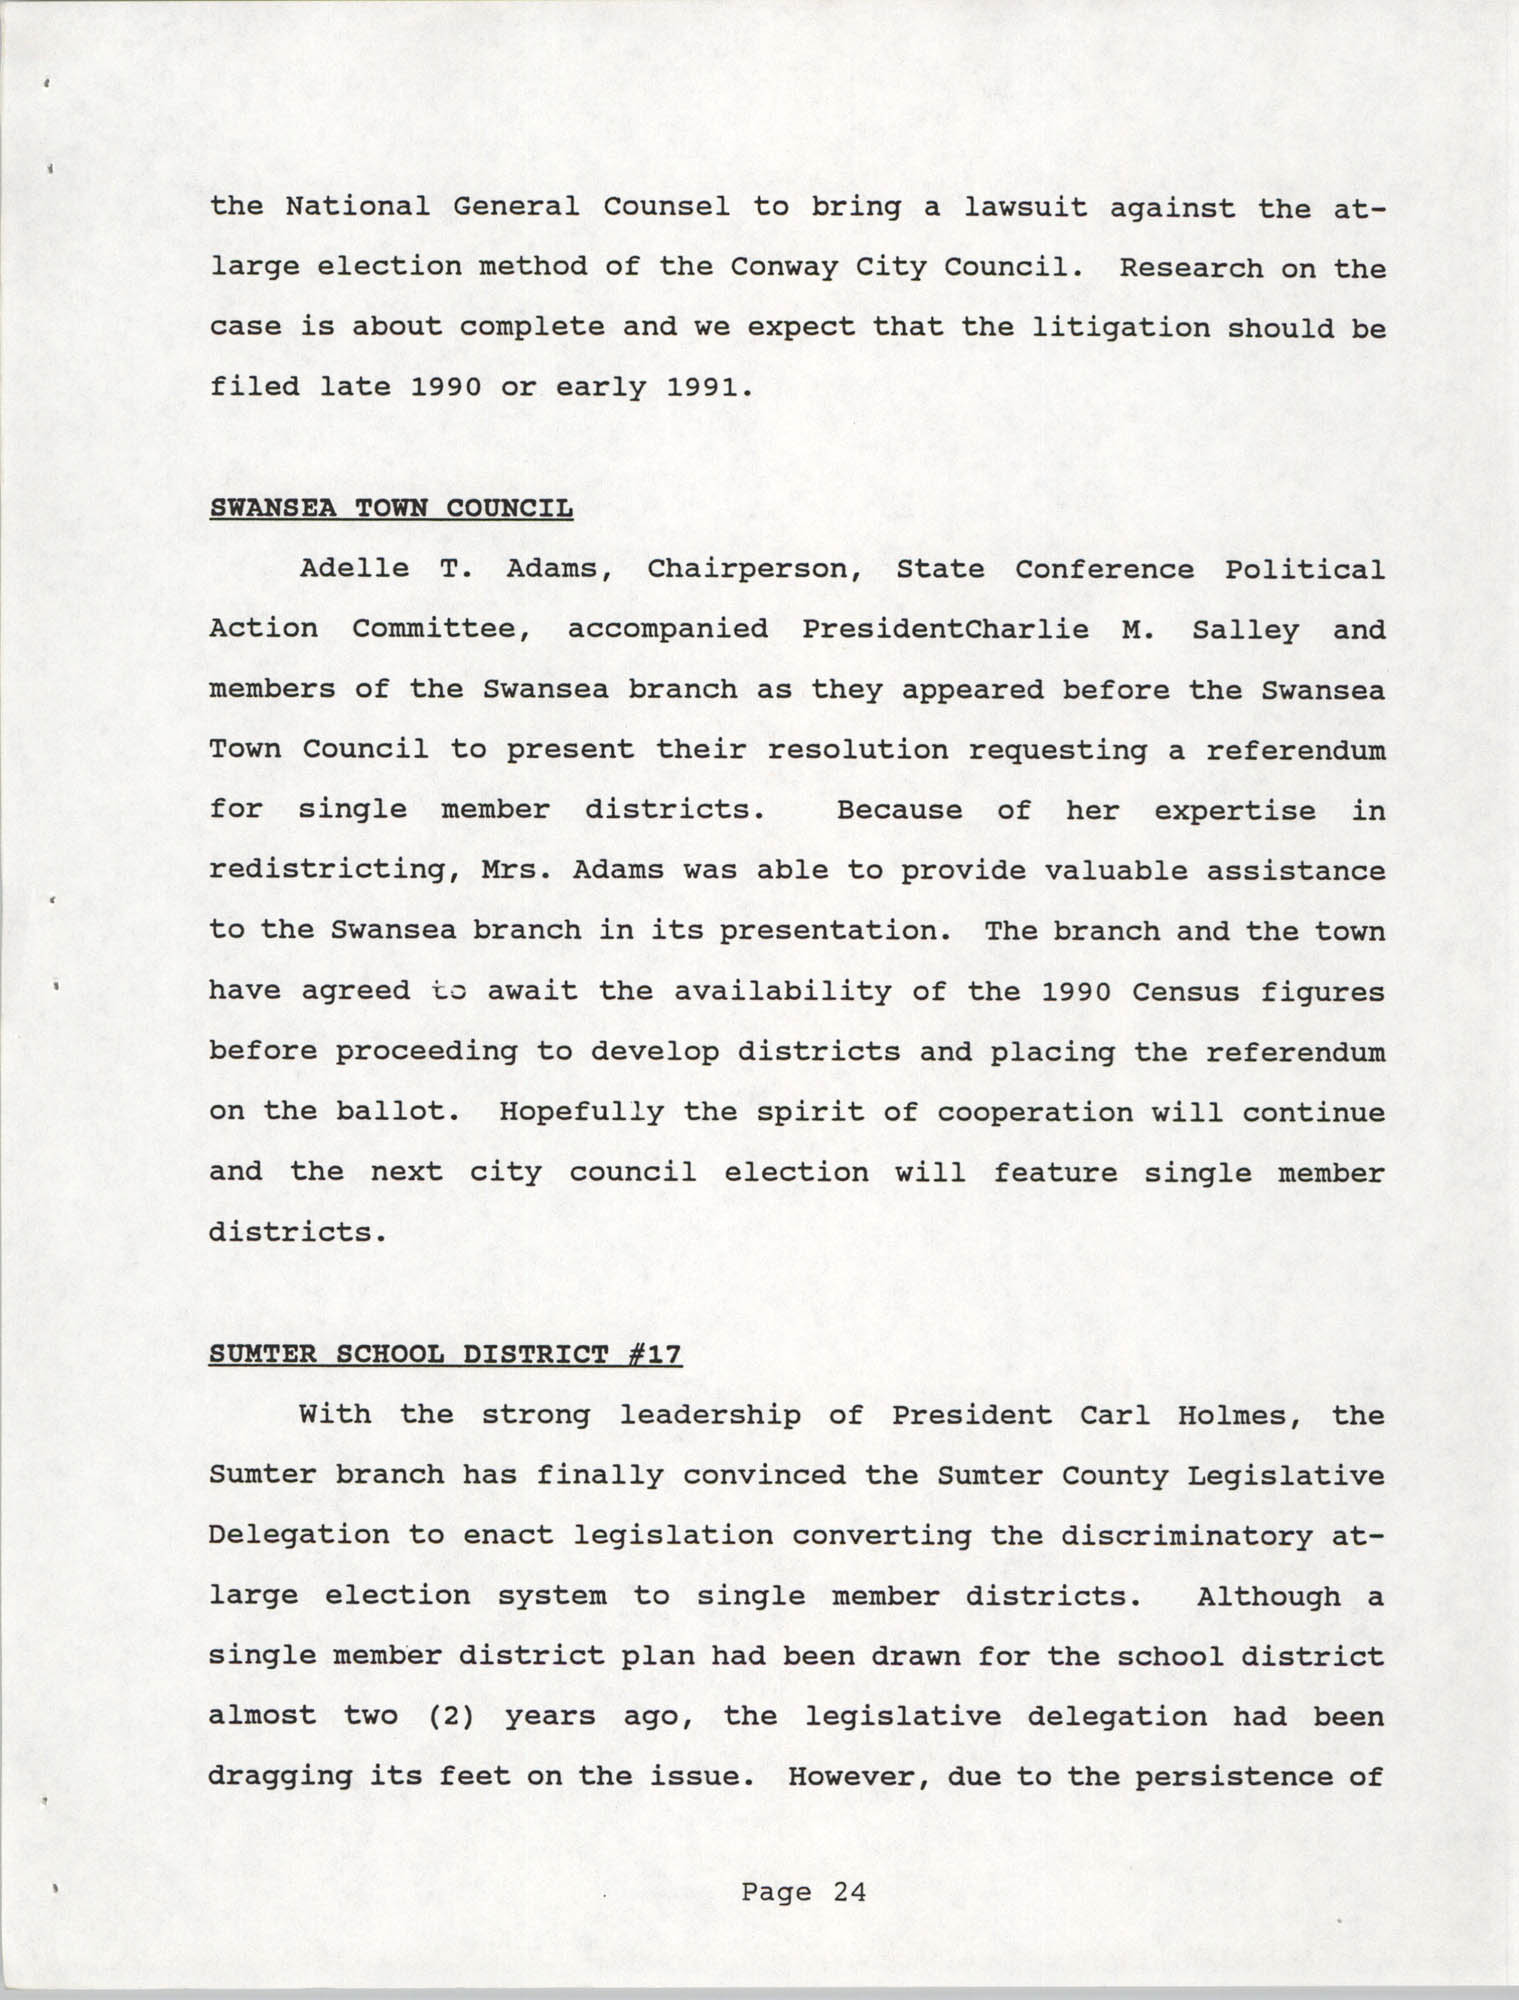 South Carolina Conference of Branches of the NAACP, 1990 Annual Report, Part One, Page 24